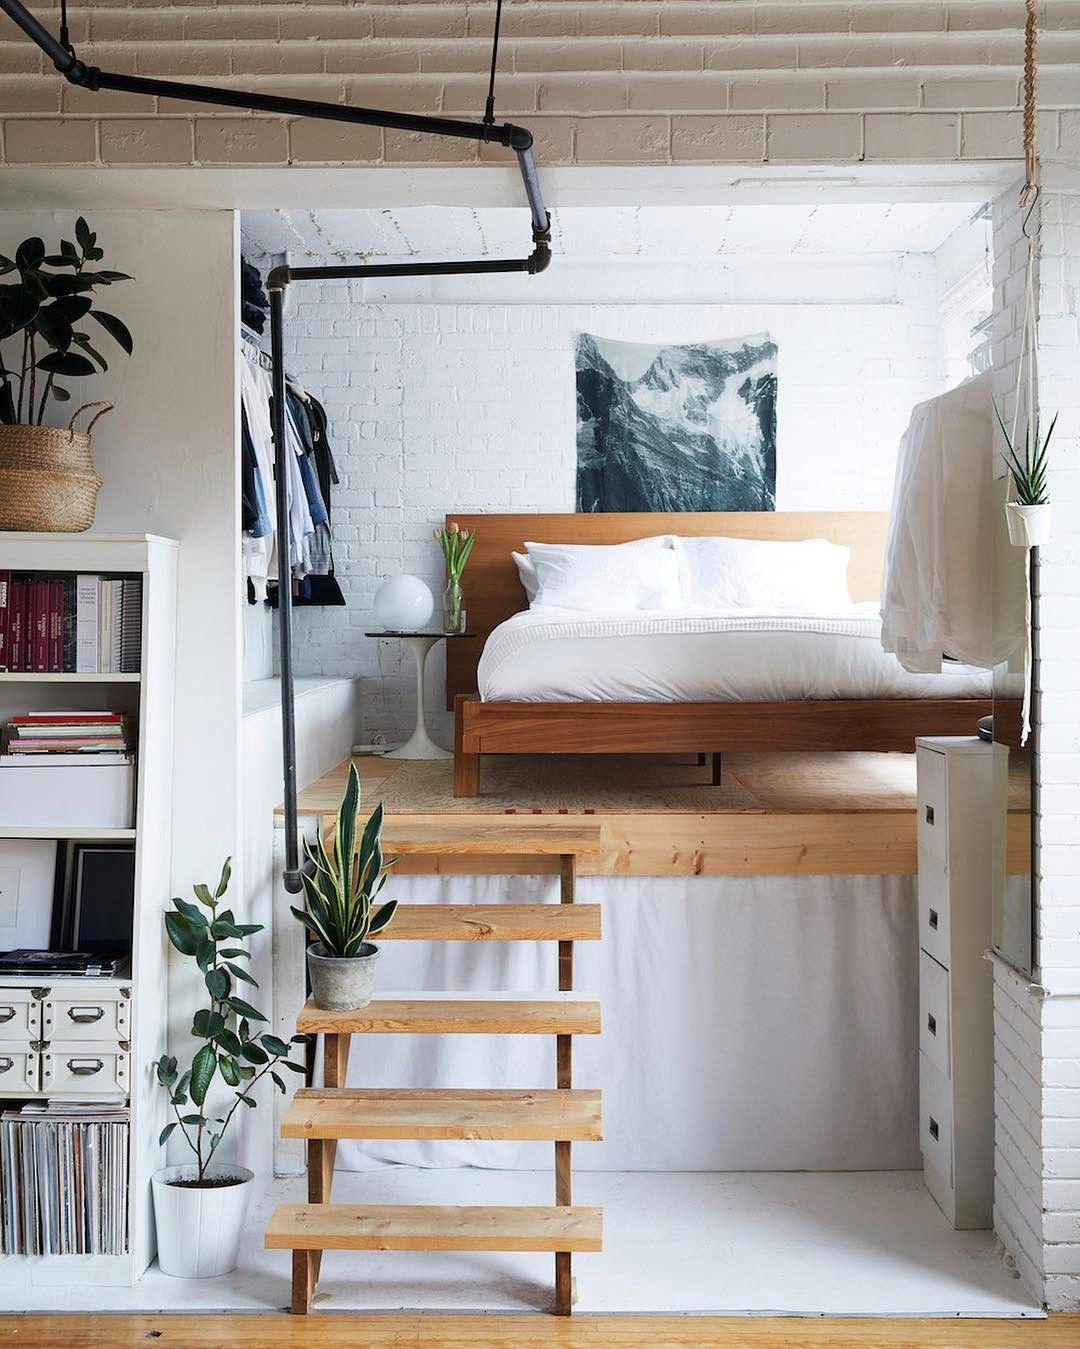 Pin by manja on ikea pinterest bed storage small spaces and storage